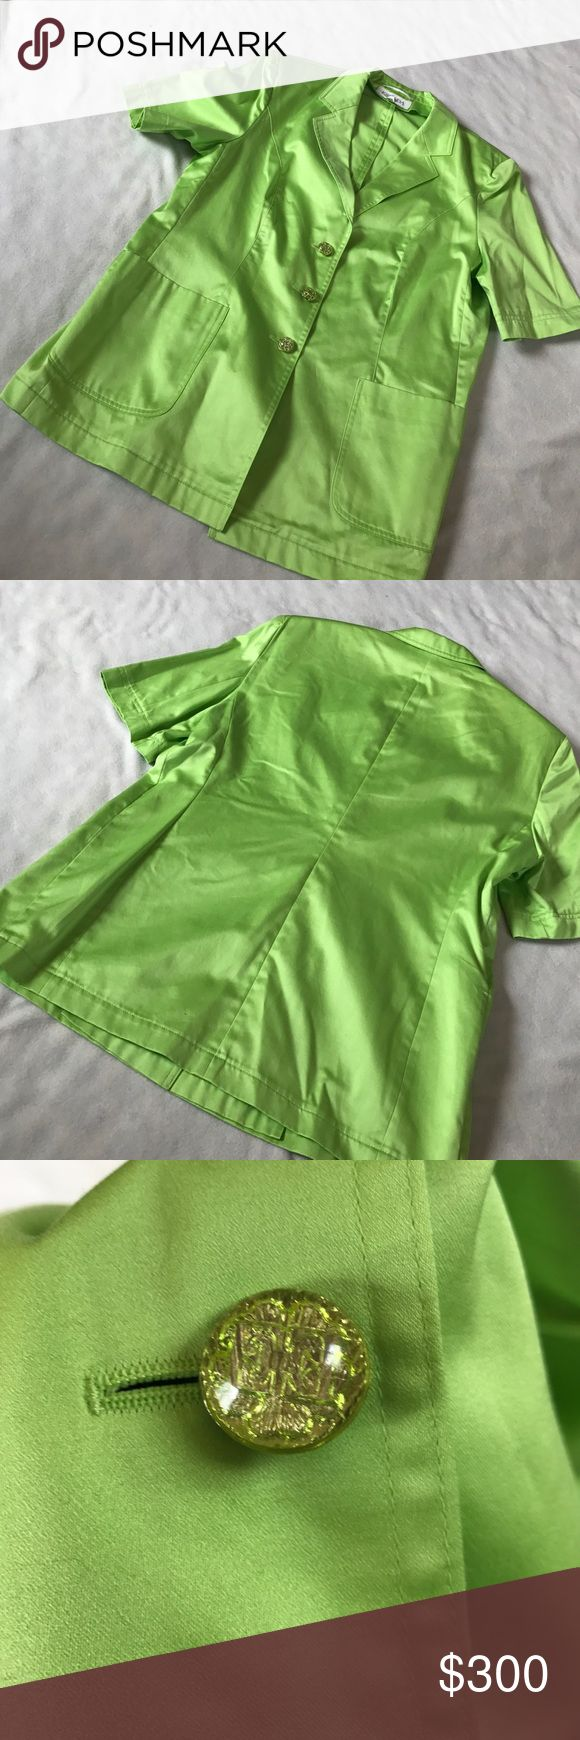 """Escada Green Short Sleeve Vintage Long Jacket 29"""" length 20.5"""" armpit to armpit. Lime green color. Short sleeve. Clear green buttons up the front with an E on them. Has shoulder pads. Is a 44, which is an M/L. Excellent condition. Great statement piece. Bundle 2+ items for a discount. Escada Jackets & Coats Blazers"""